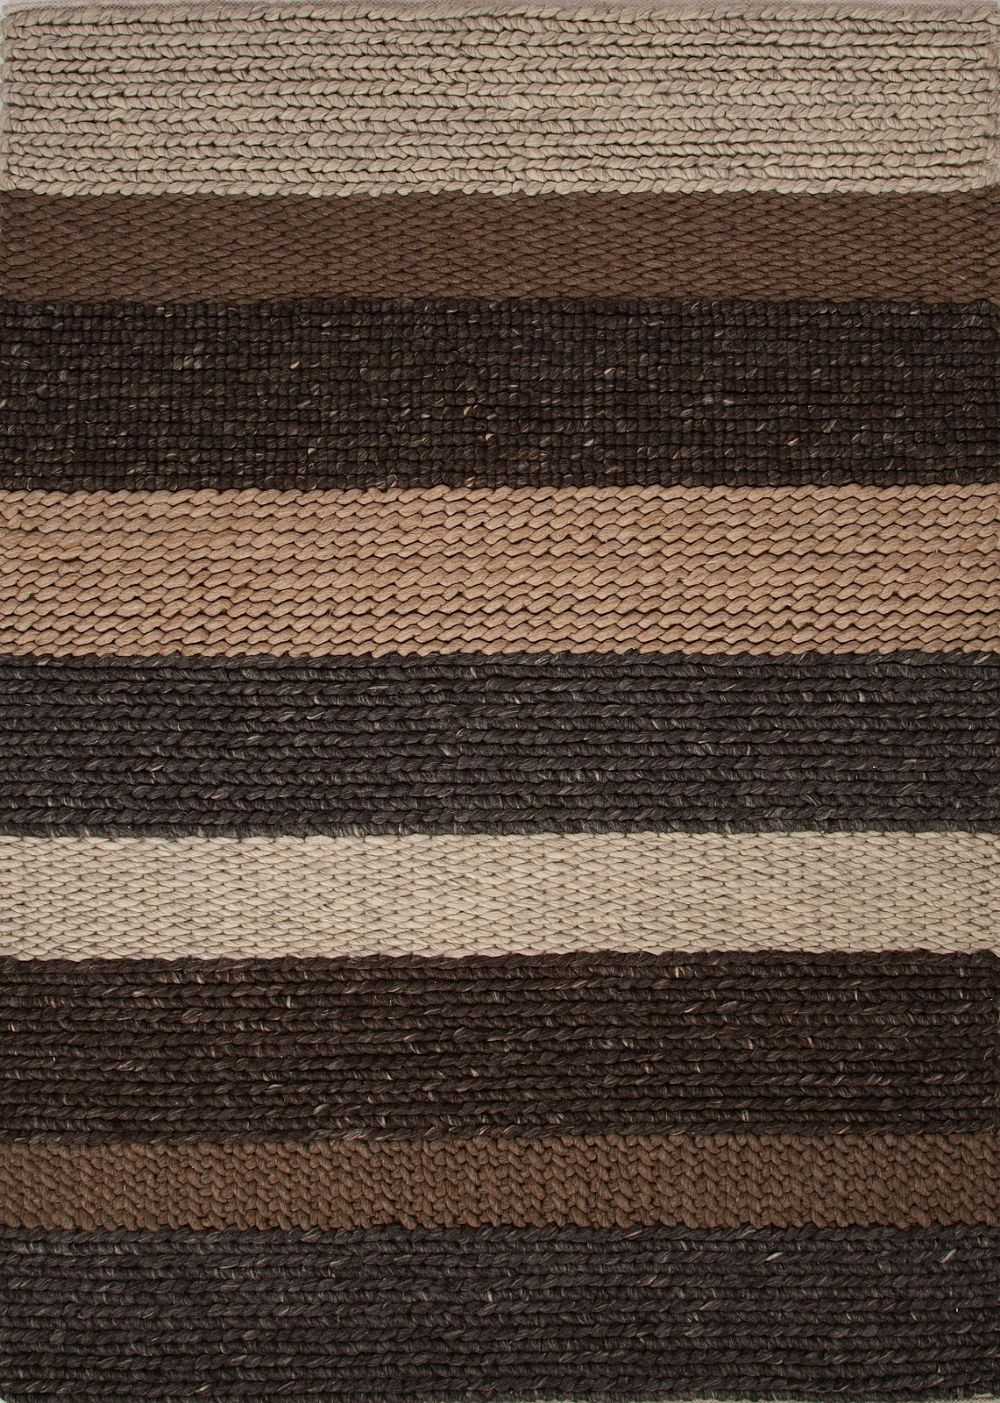 jaipur shelton solid/striped area rug collection